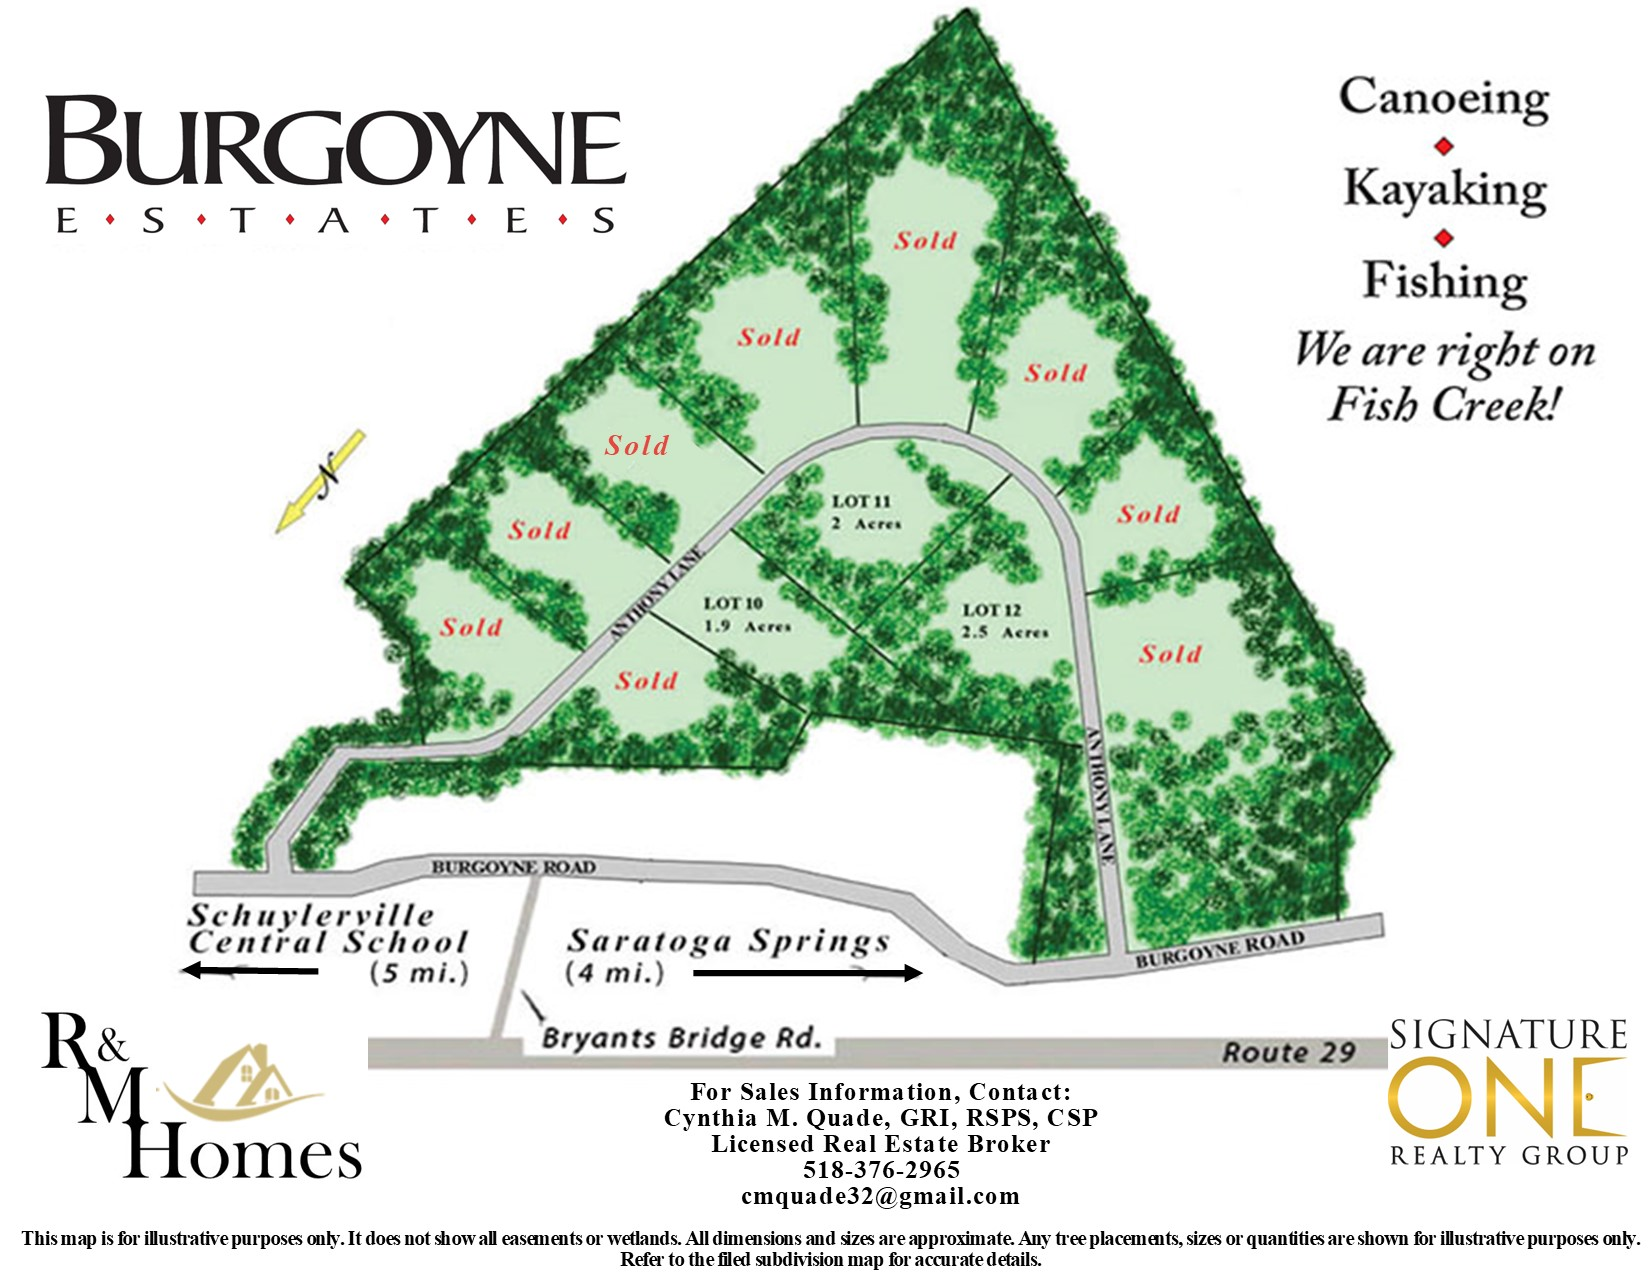 Burgoyne Estates Site Map